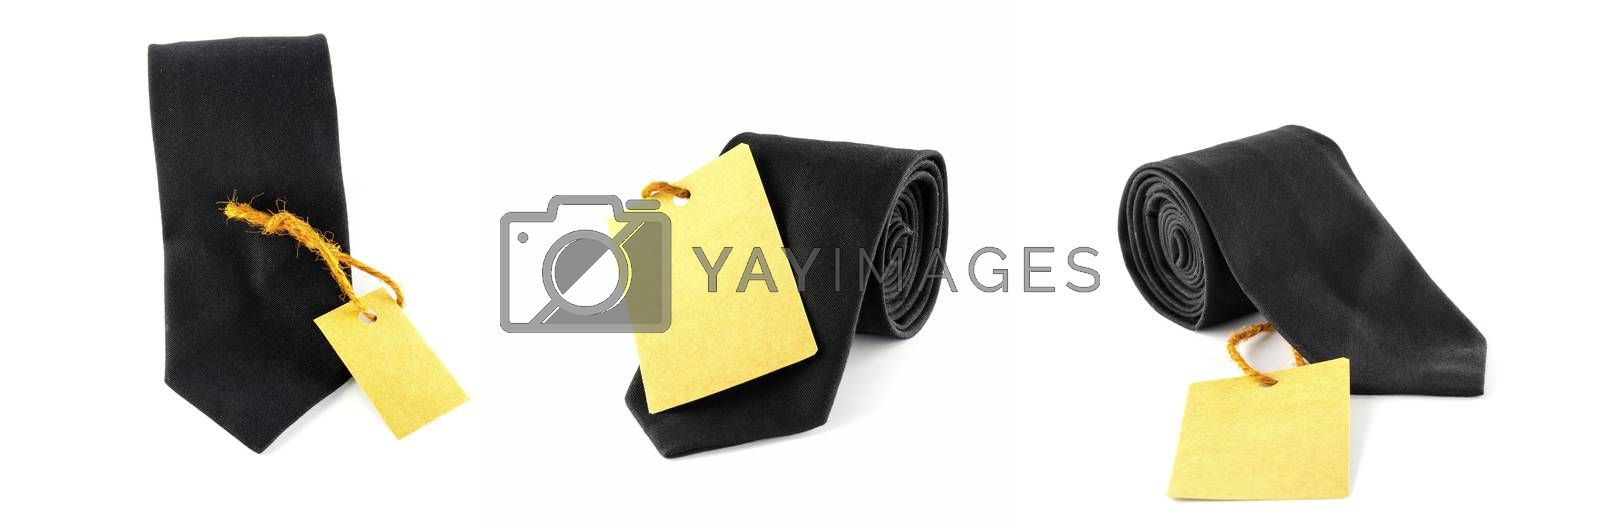 neck tie and cost tag on a white background